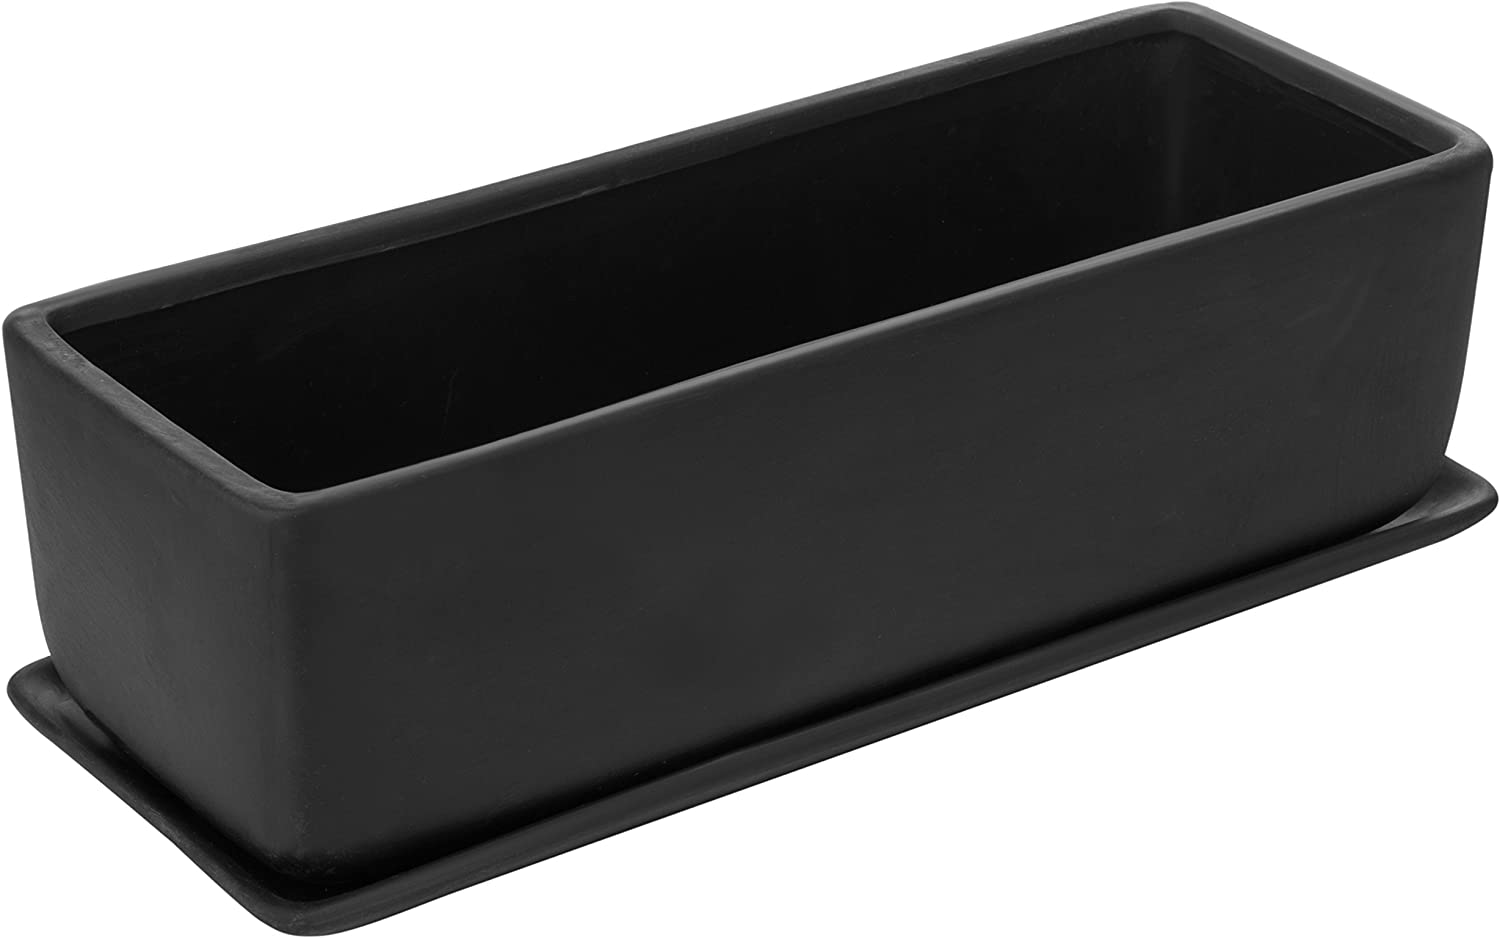 MyGift 14-Inch Rectangular Modern Ceramic Succulent Planter Pot, Window Box with Saucer, Matte Black